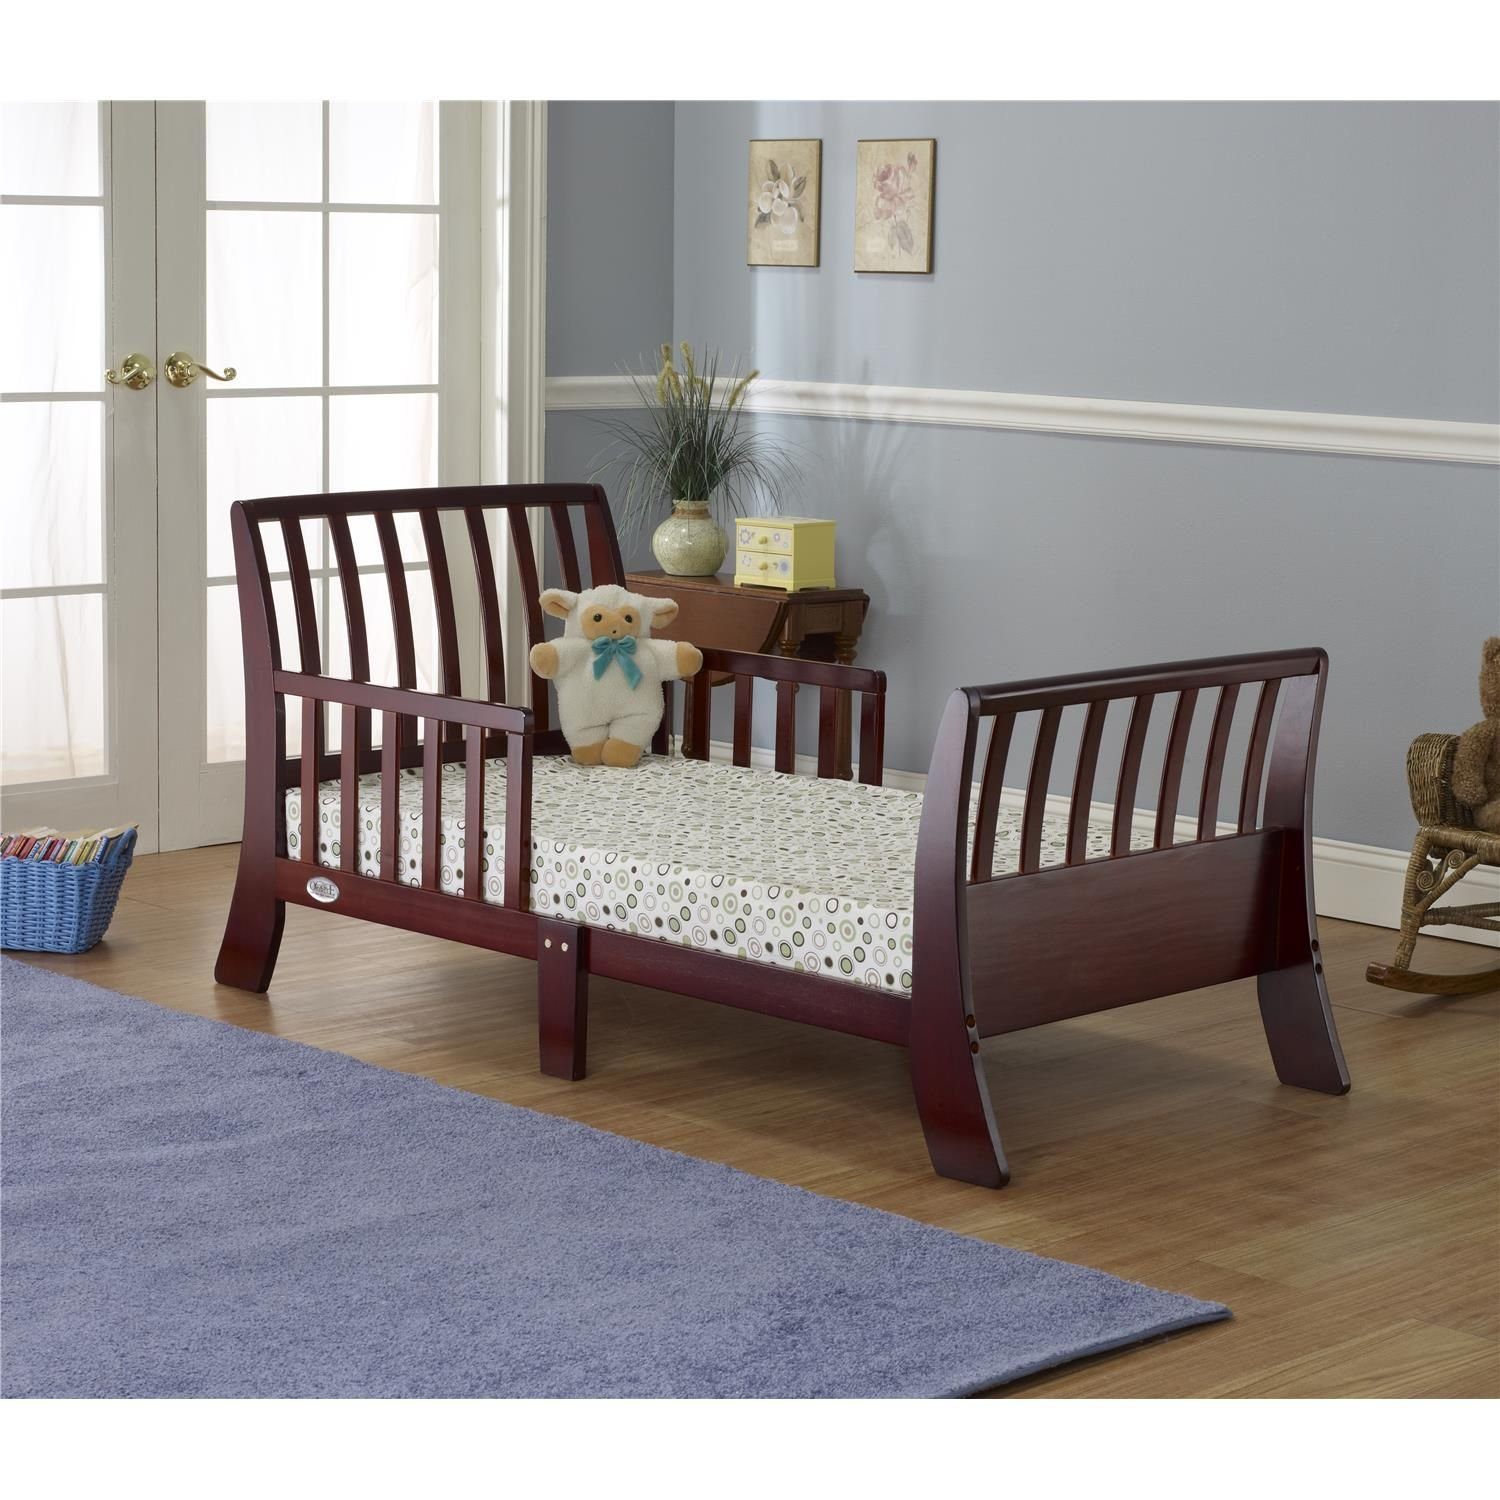 Orbelle Trading The Orbelle Open Aire Toddler Bed, Natural (Discontinued by Manufacturer)